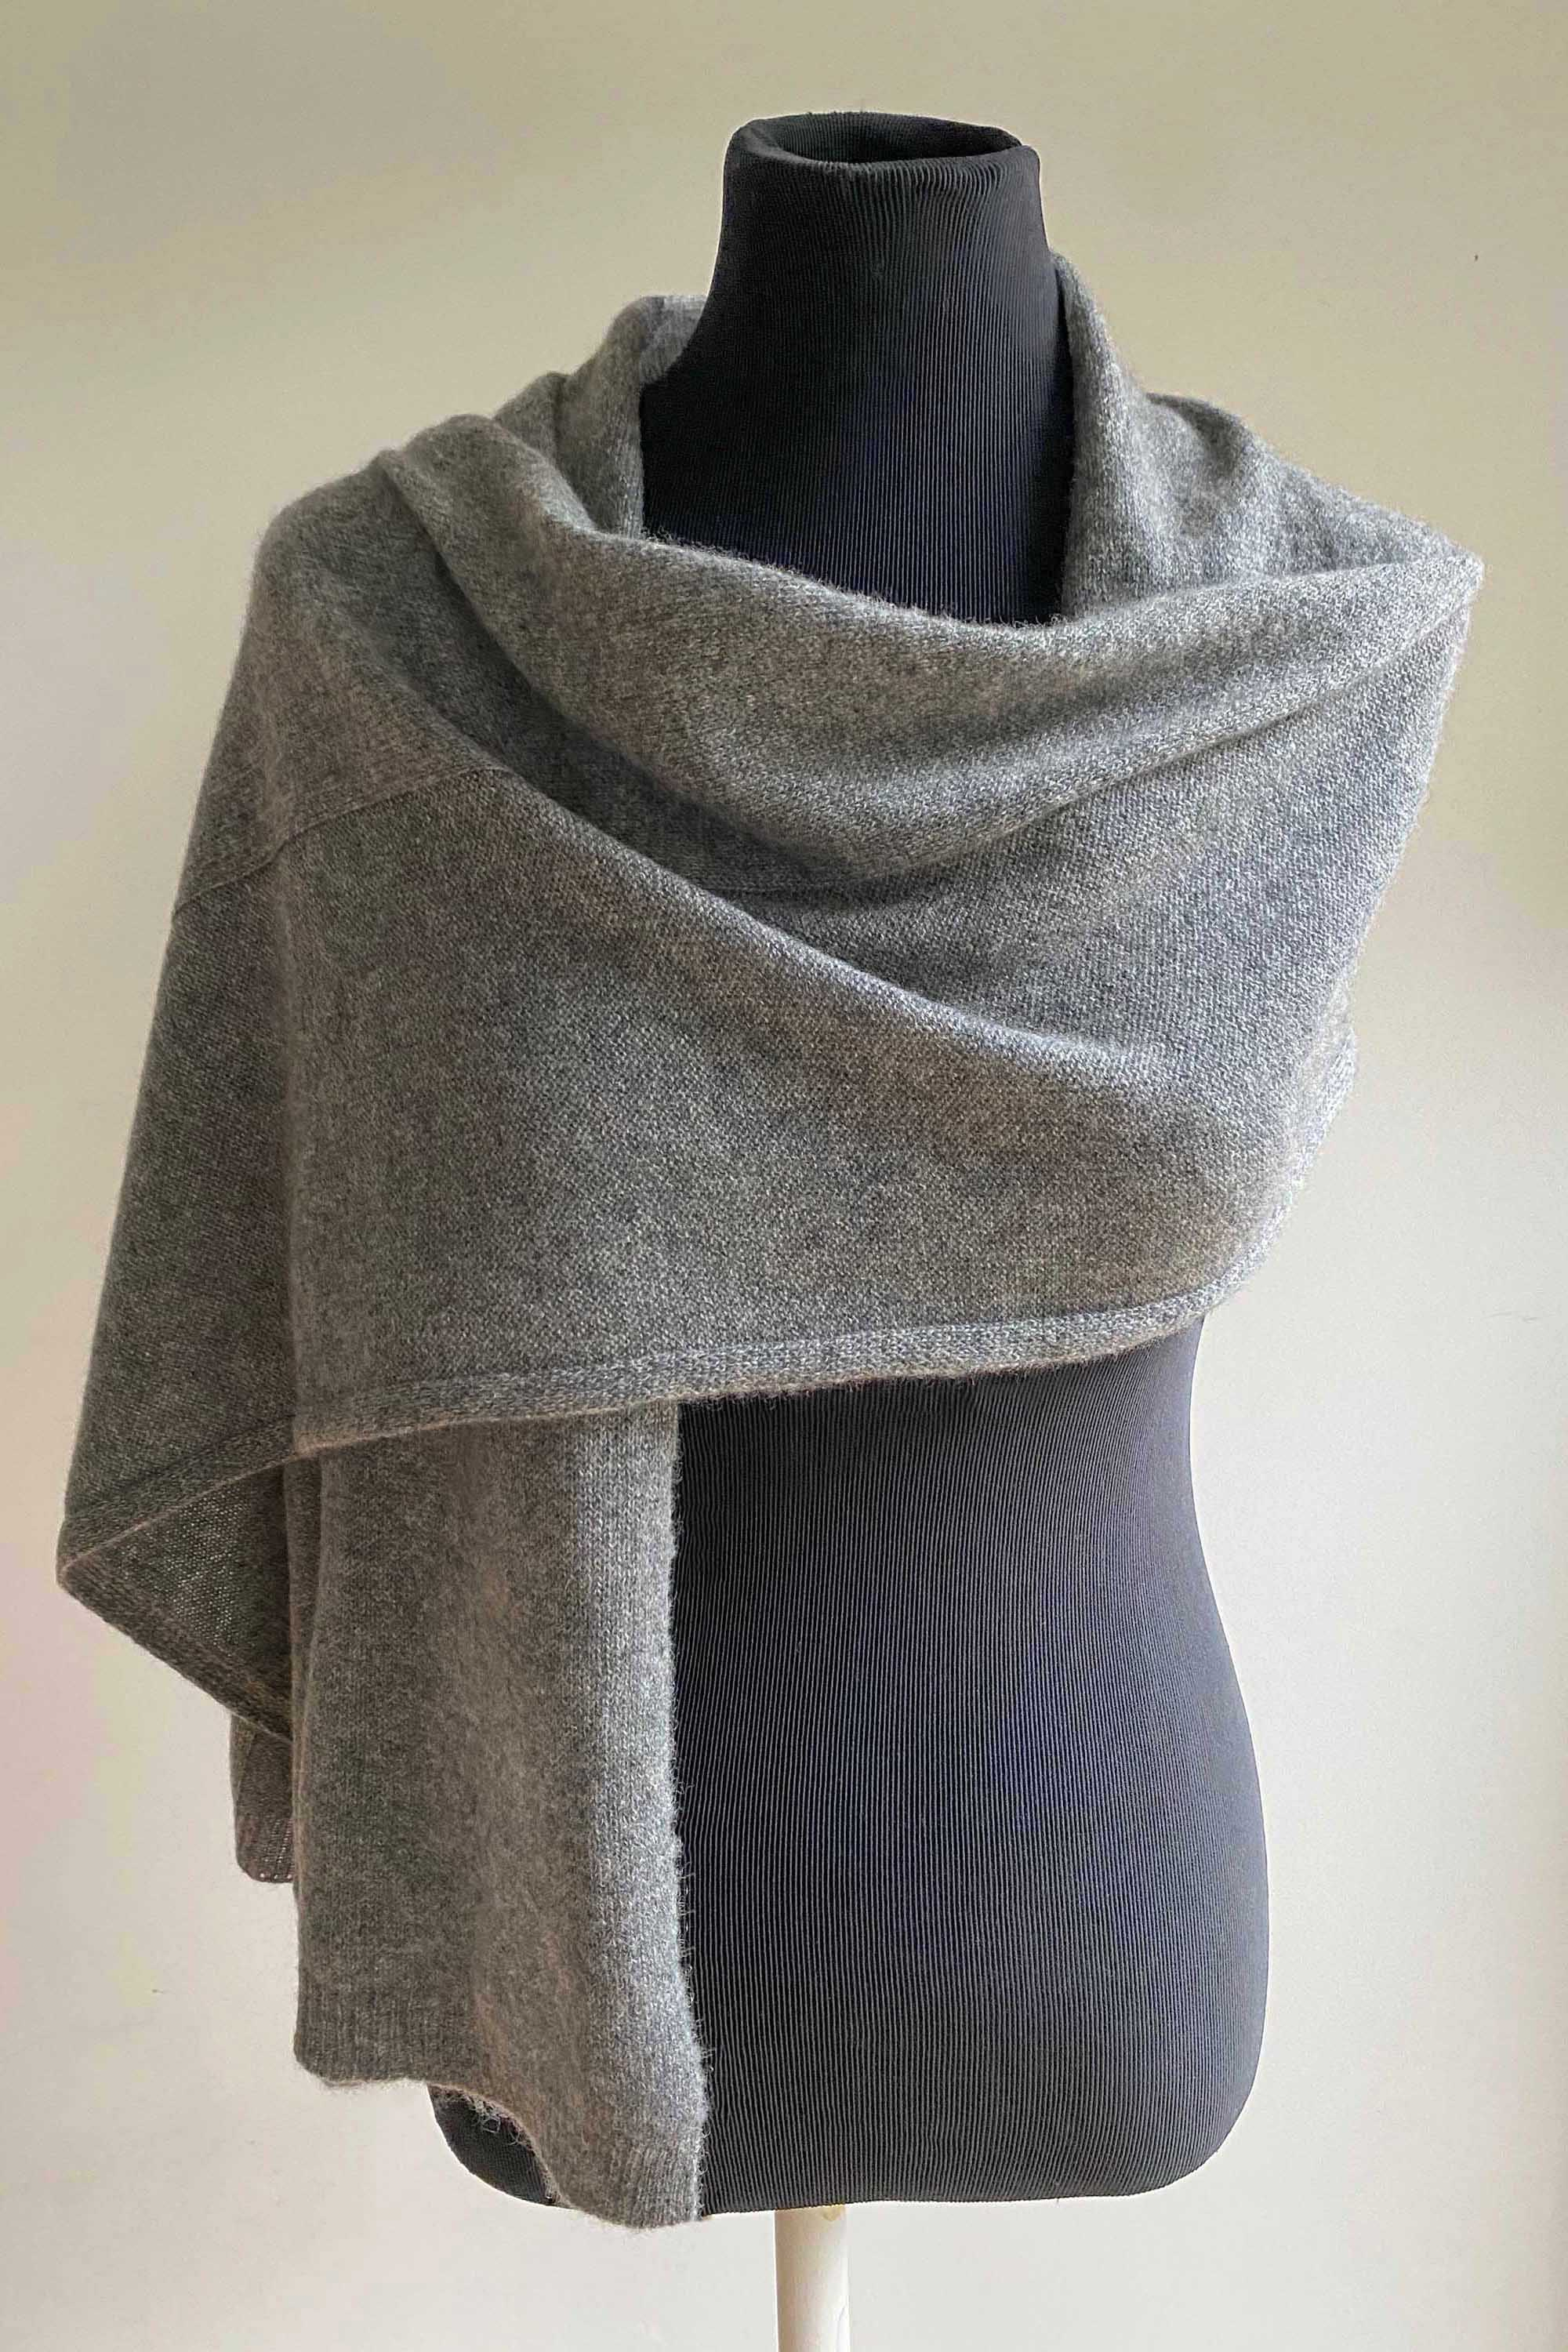 Bundle offer for women's cashmere hat, scarf and gloves in mid grey